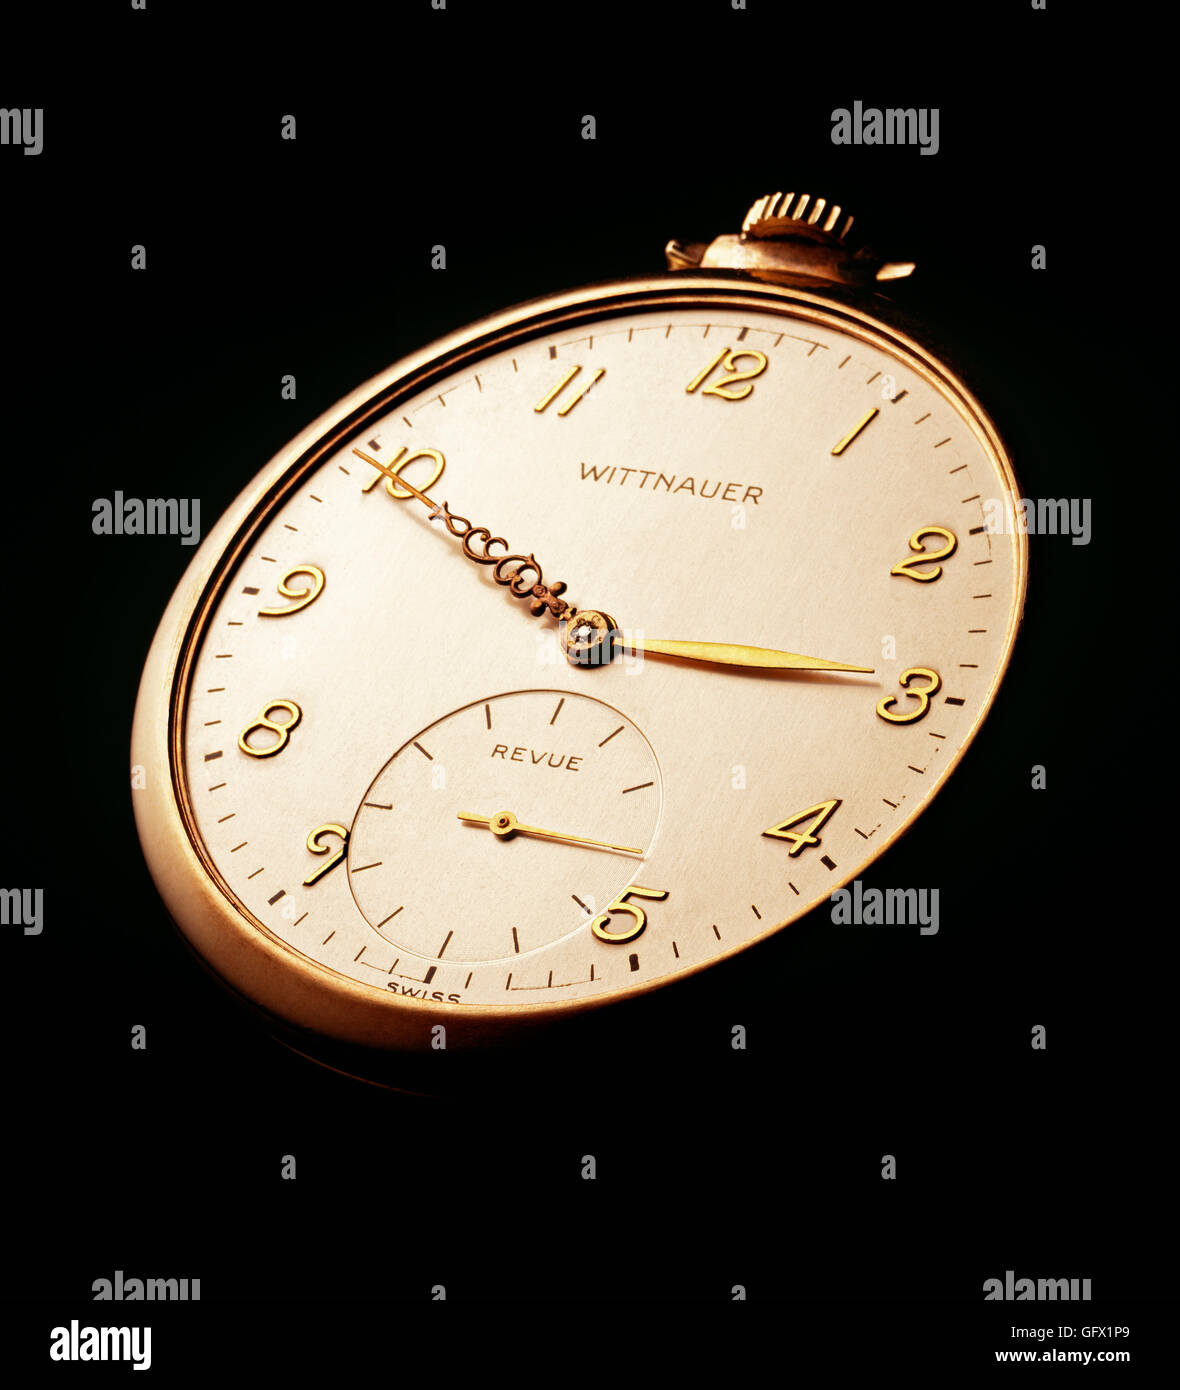 Close-up of a vintage pocket watch timepiece - Stock Image